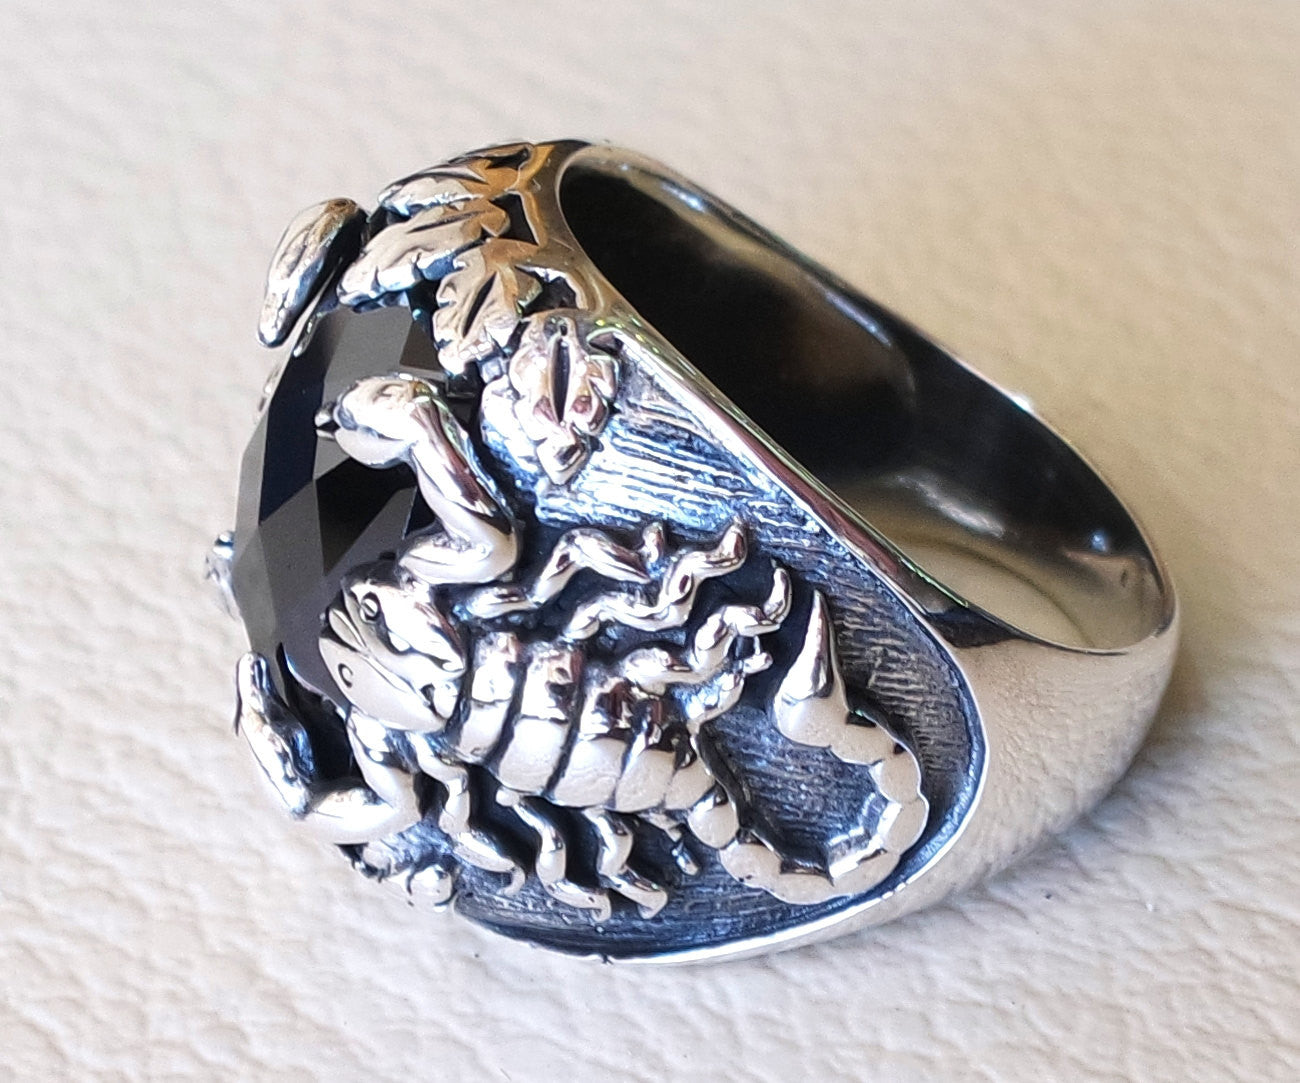 huge scorpion sterling silver 925 huge ring any size rectangular black onyx agate semi precious middle eastern vintage handmade jewelry